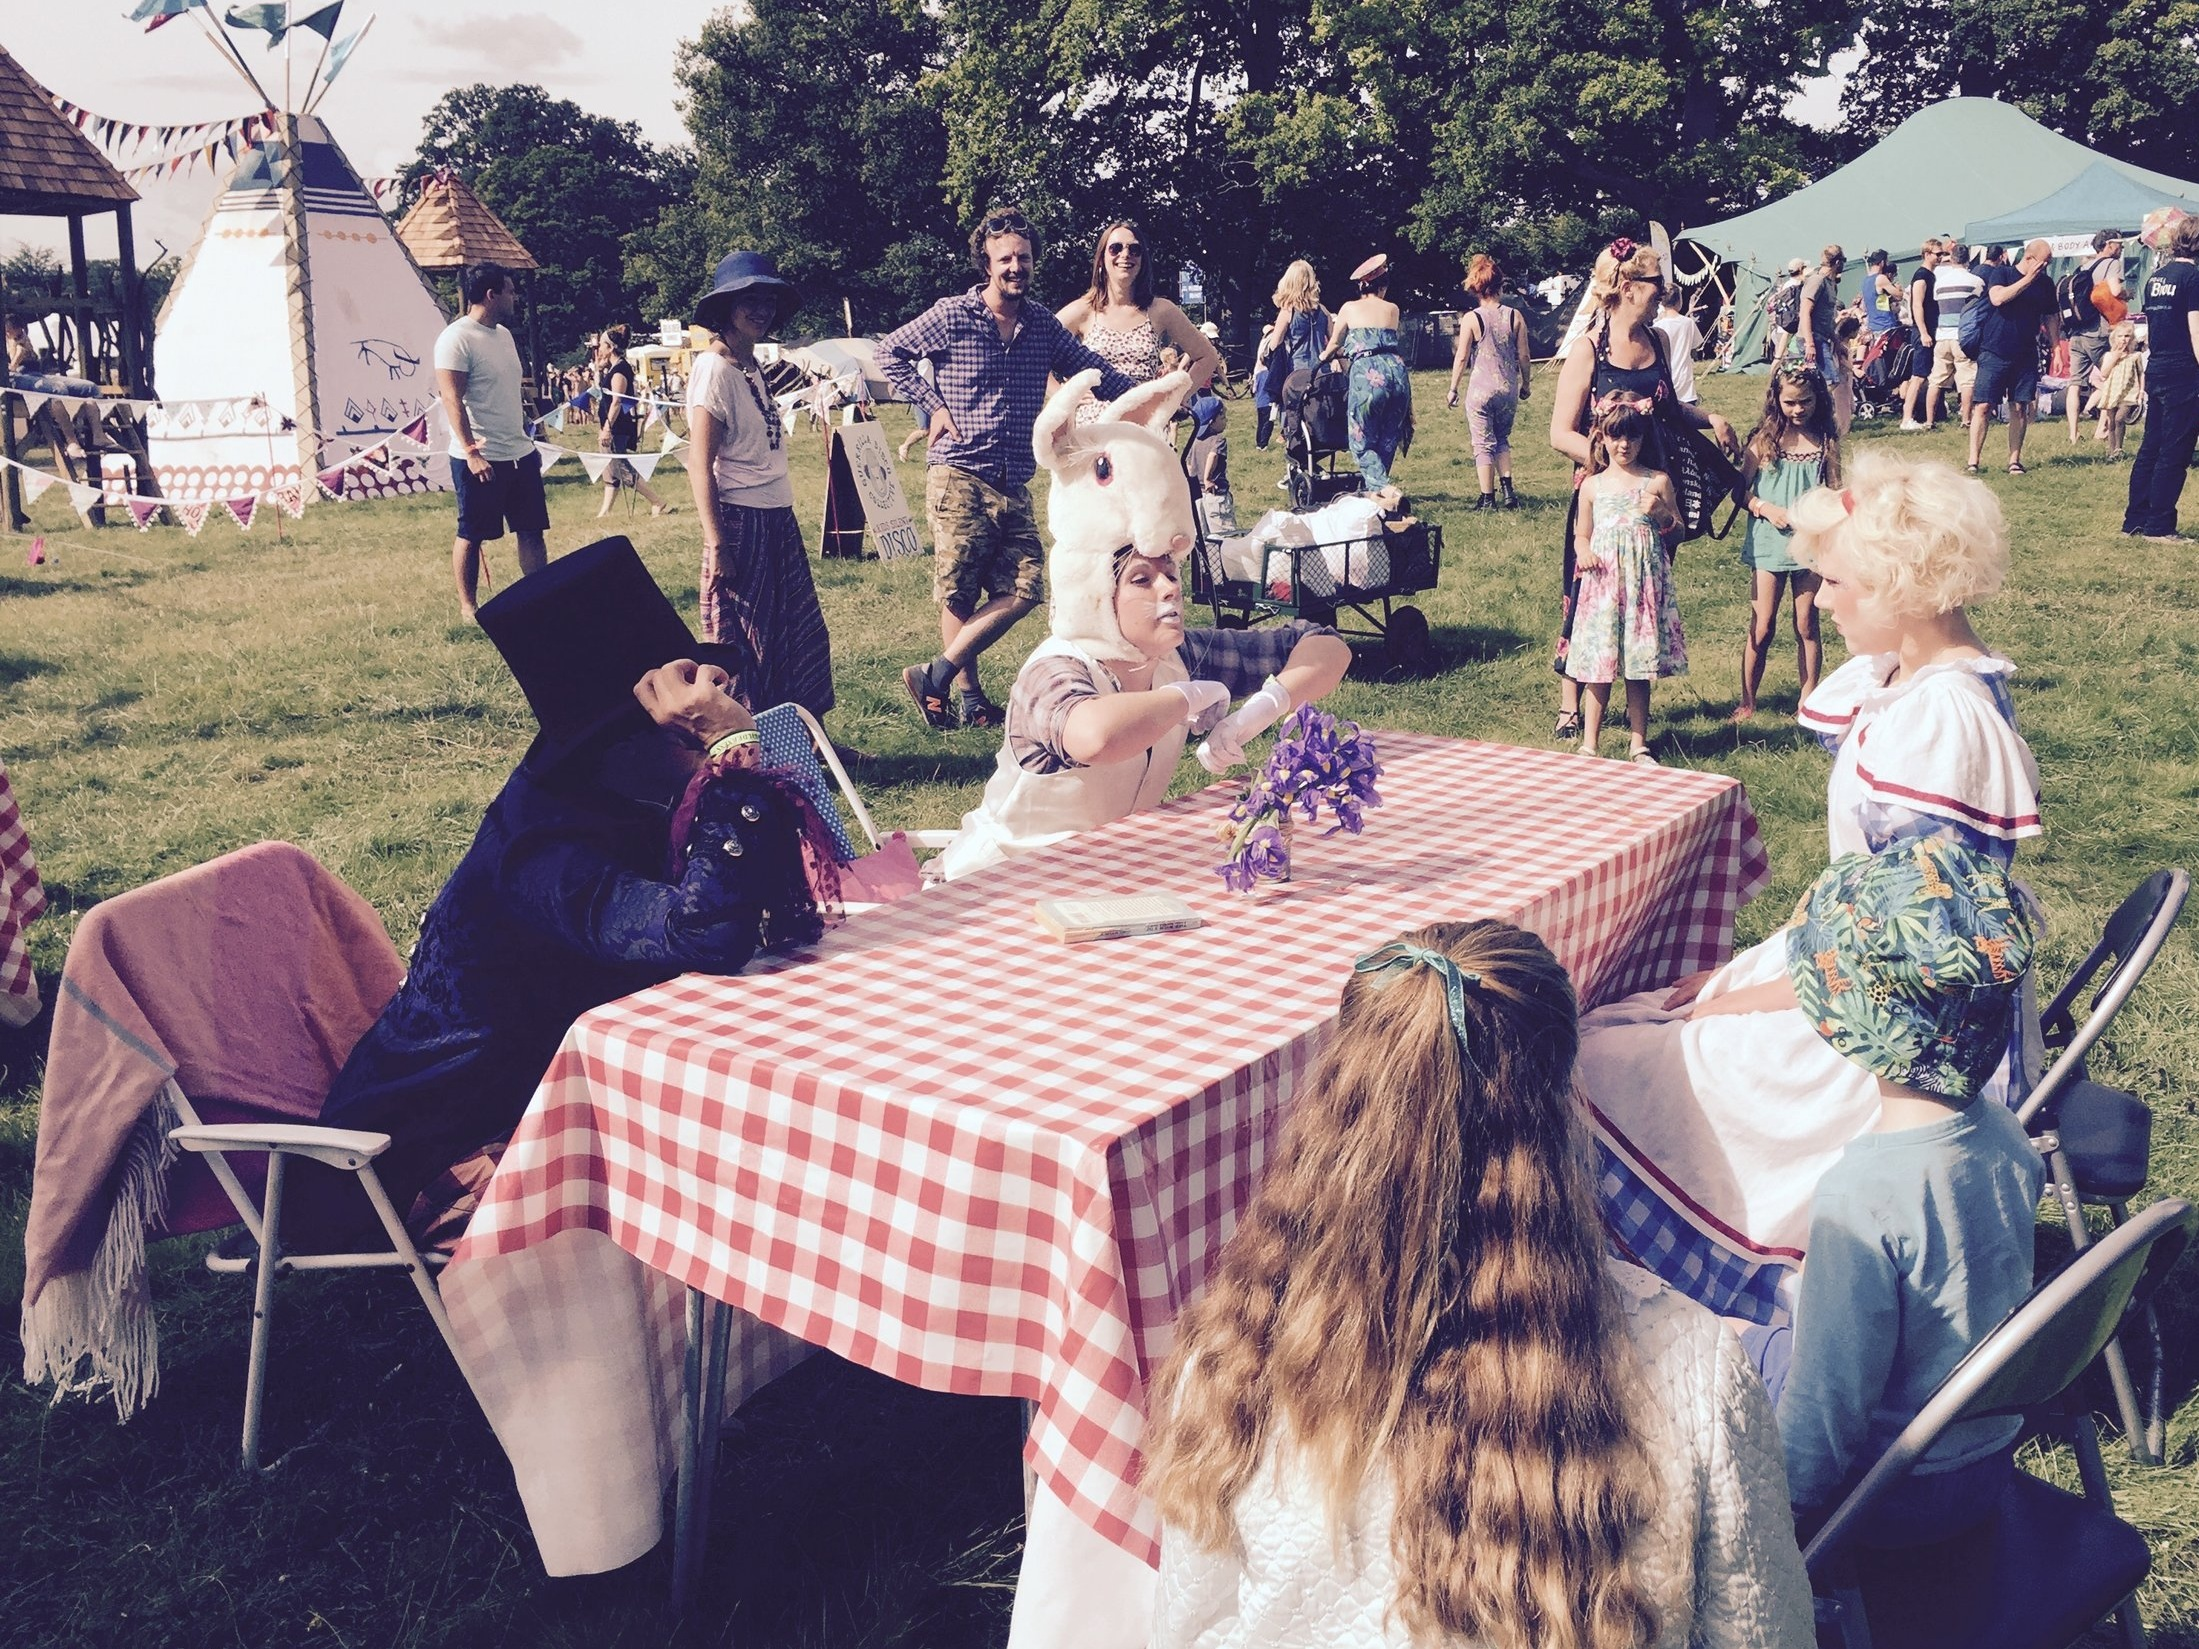 The Mad Hatter's Tea Party - The Gateway and Storystock Circus of Stories introduce Alice, the Mad Hatter and the White Rabbit where it's always tea time, there is much madness and everyone is welcome. All ages.